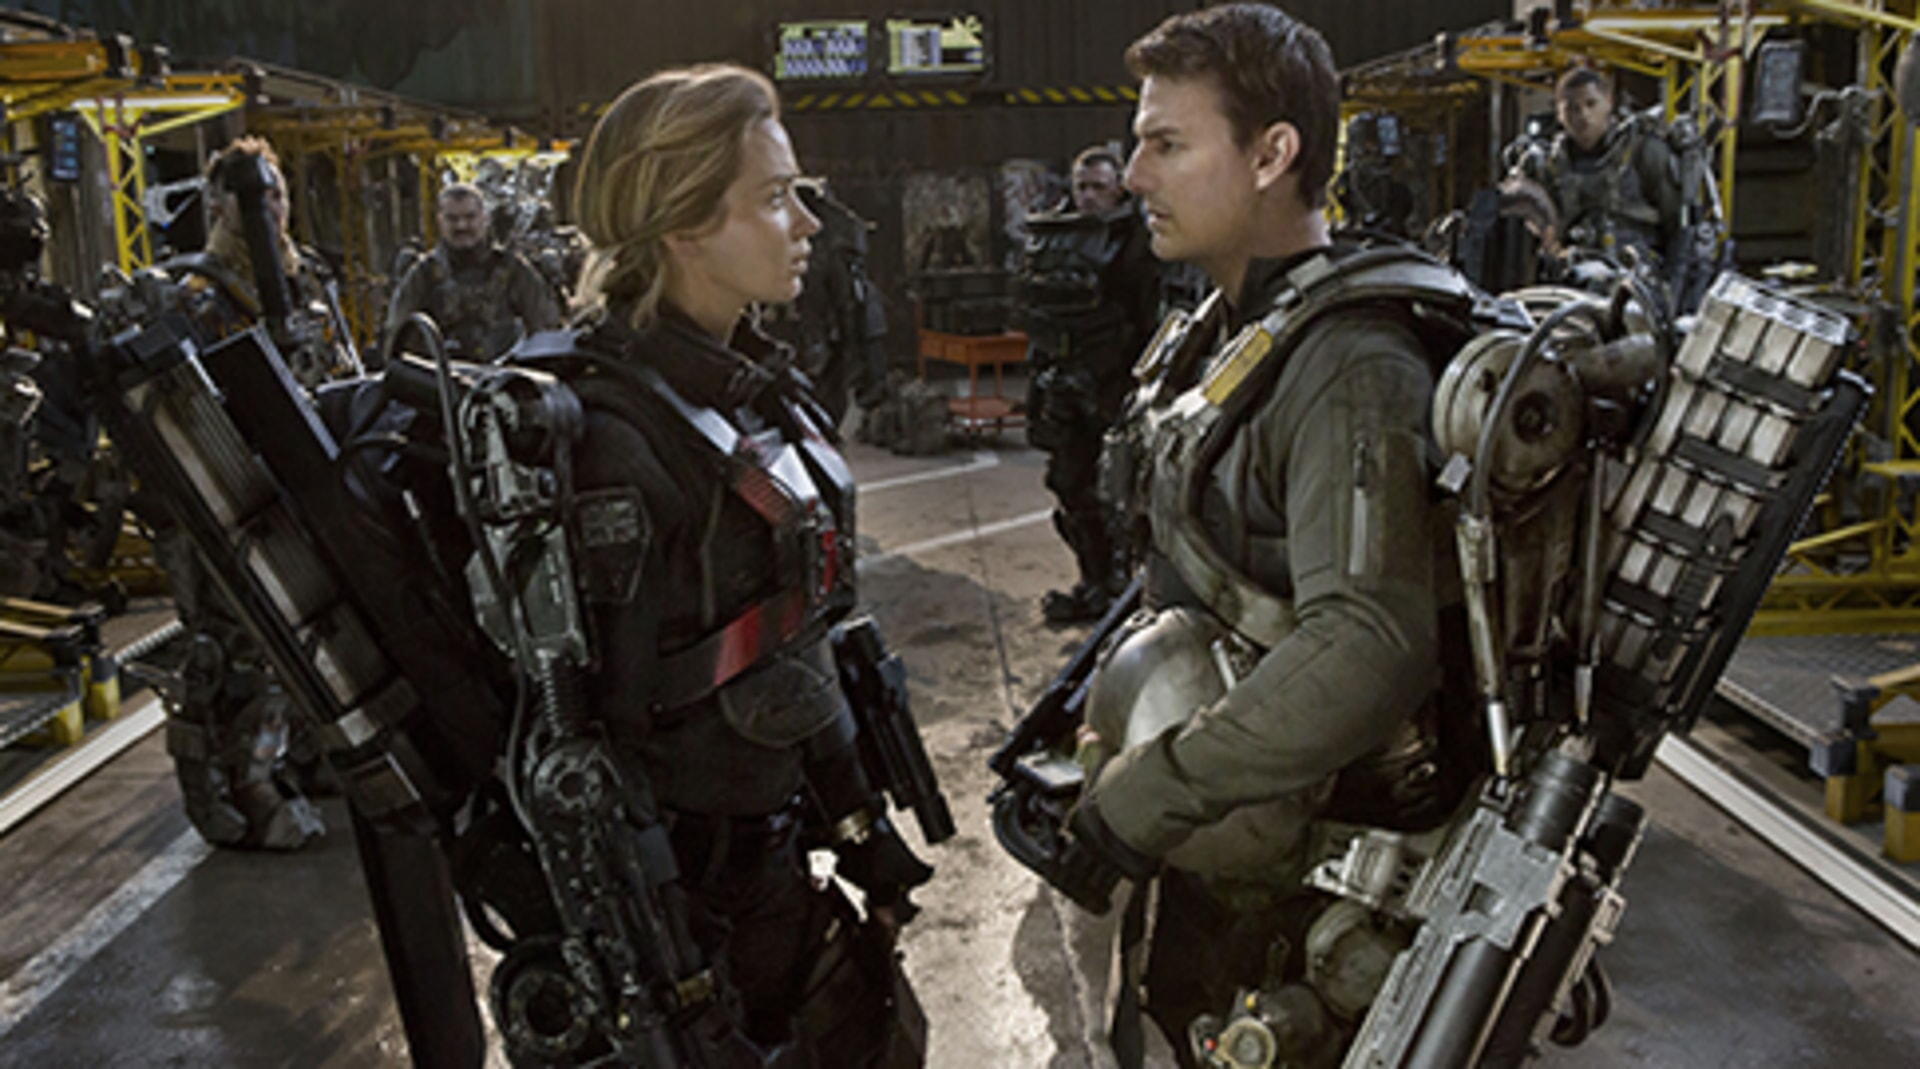 Edge of Tomorrow - Image 8